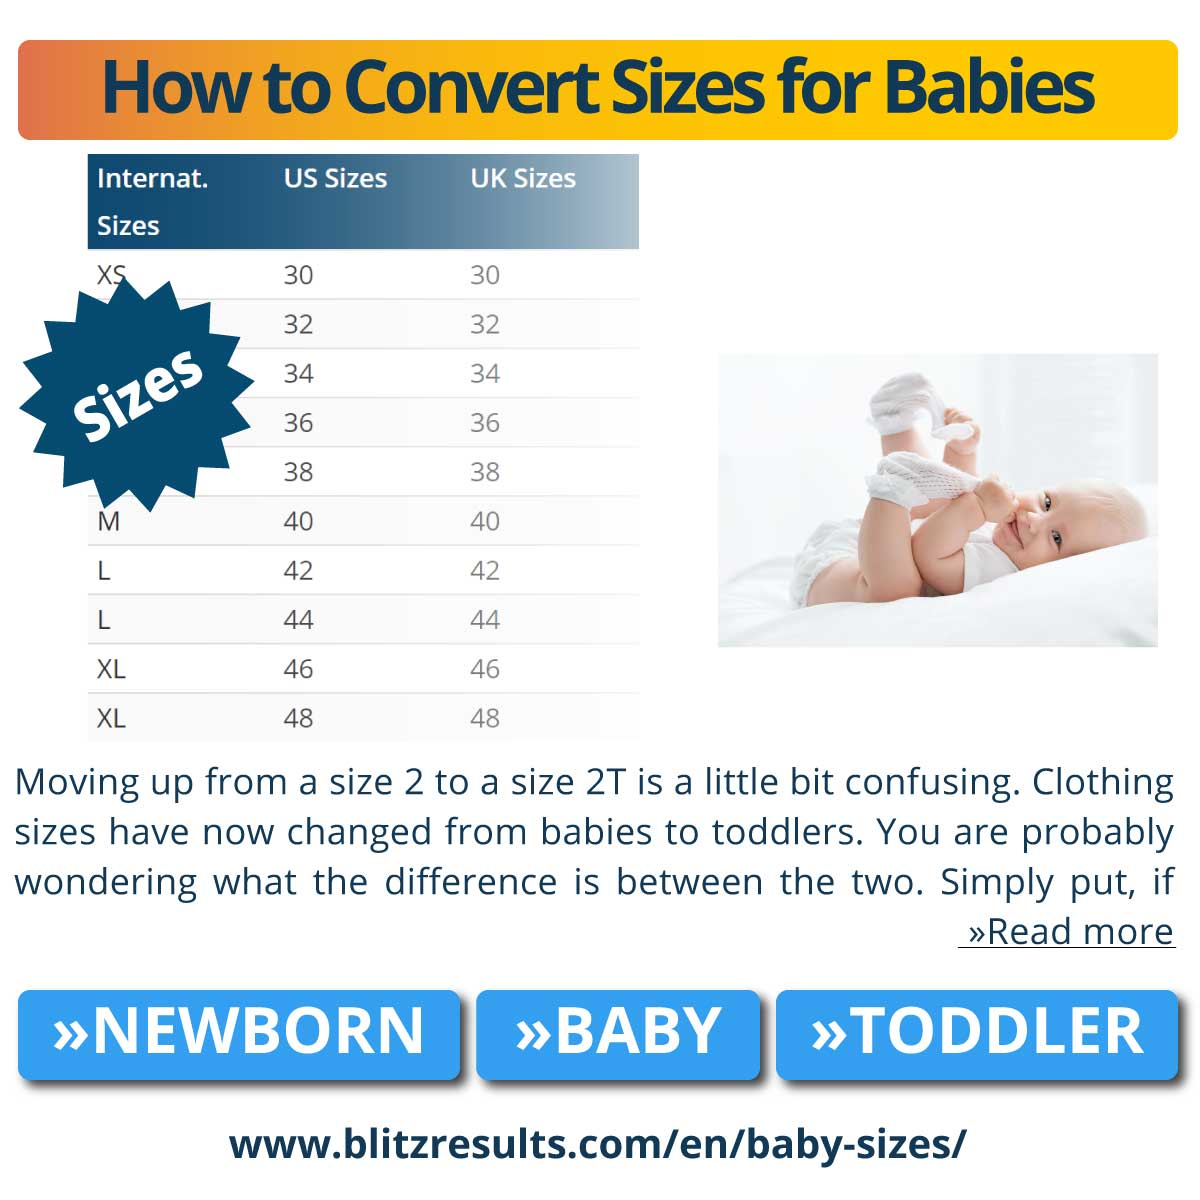 How to Convert Sizes for Babies